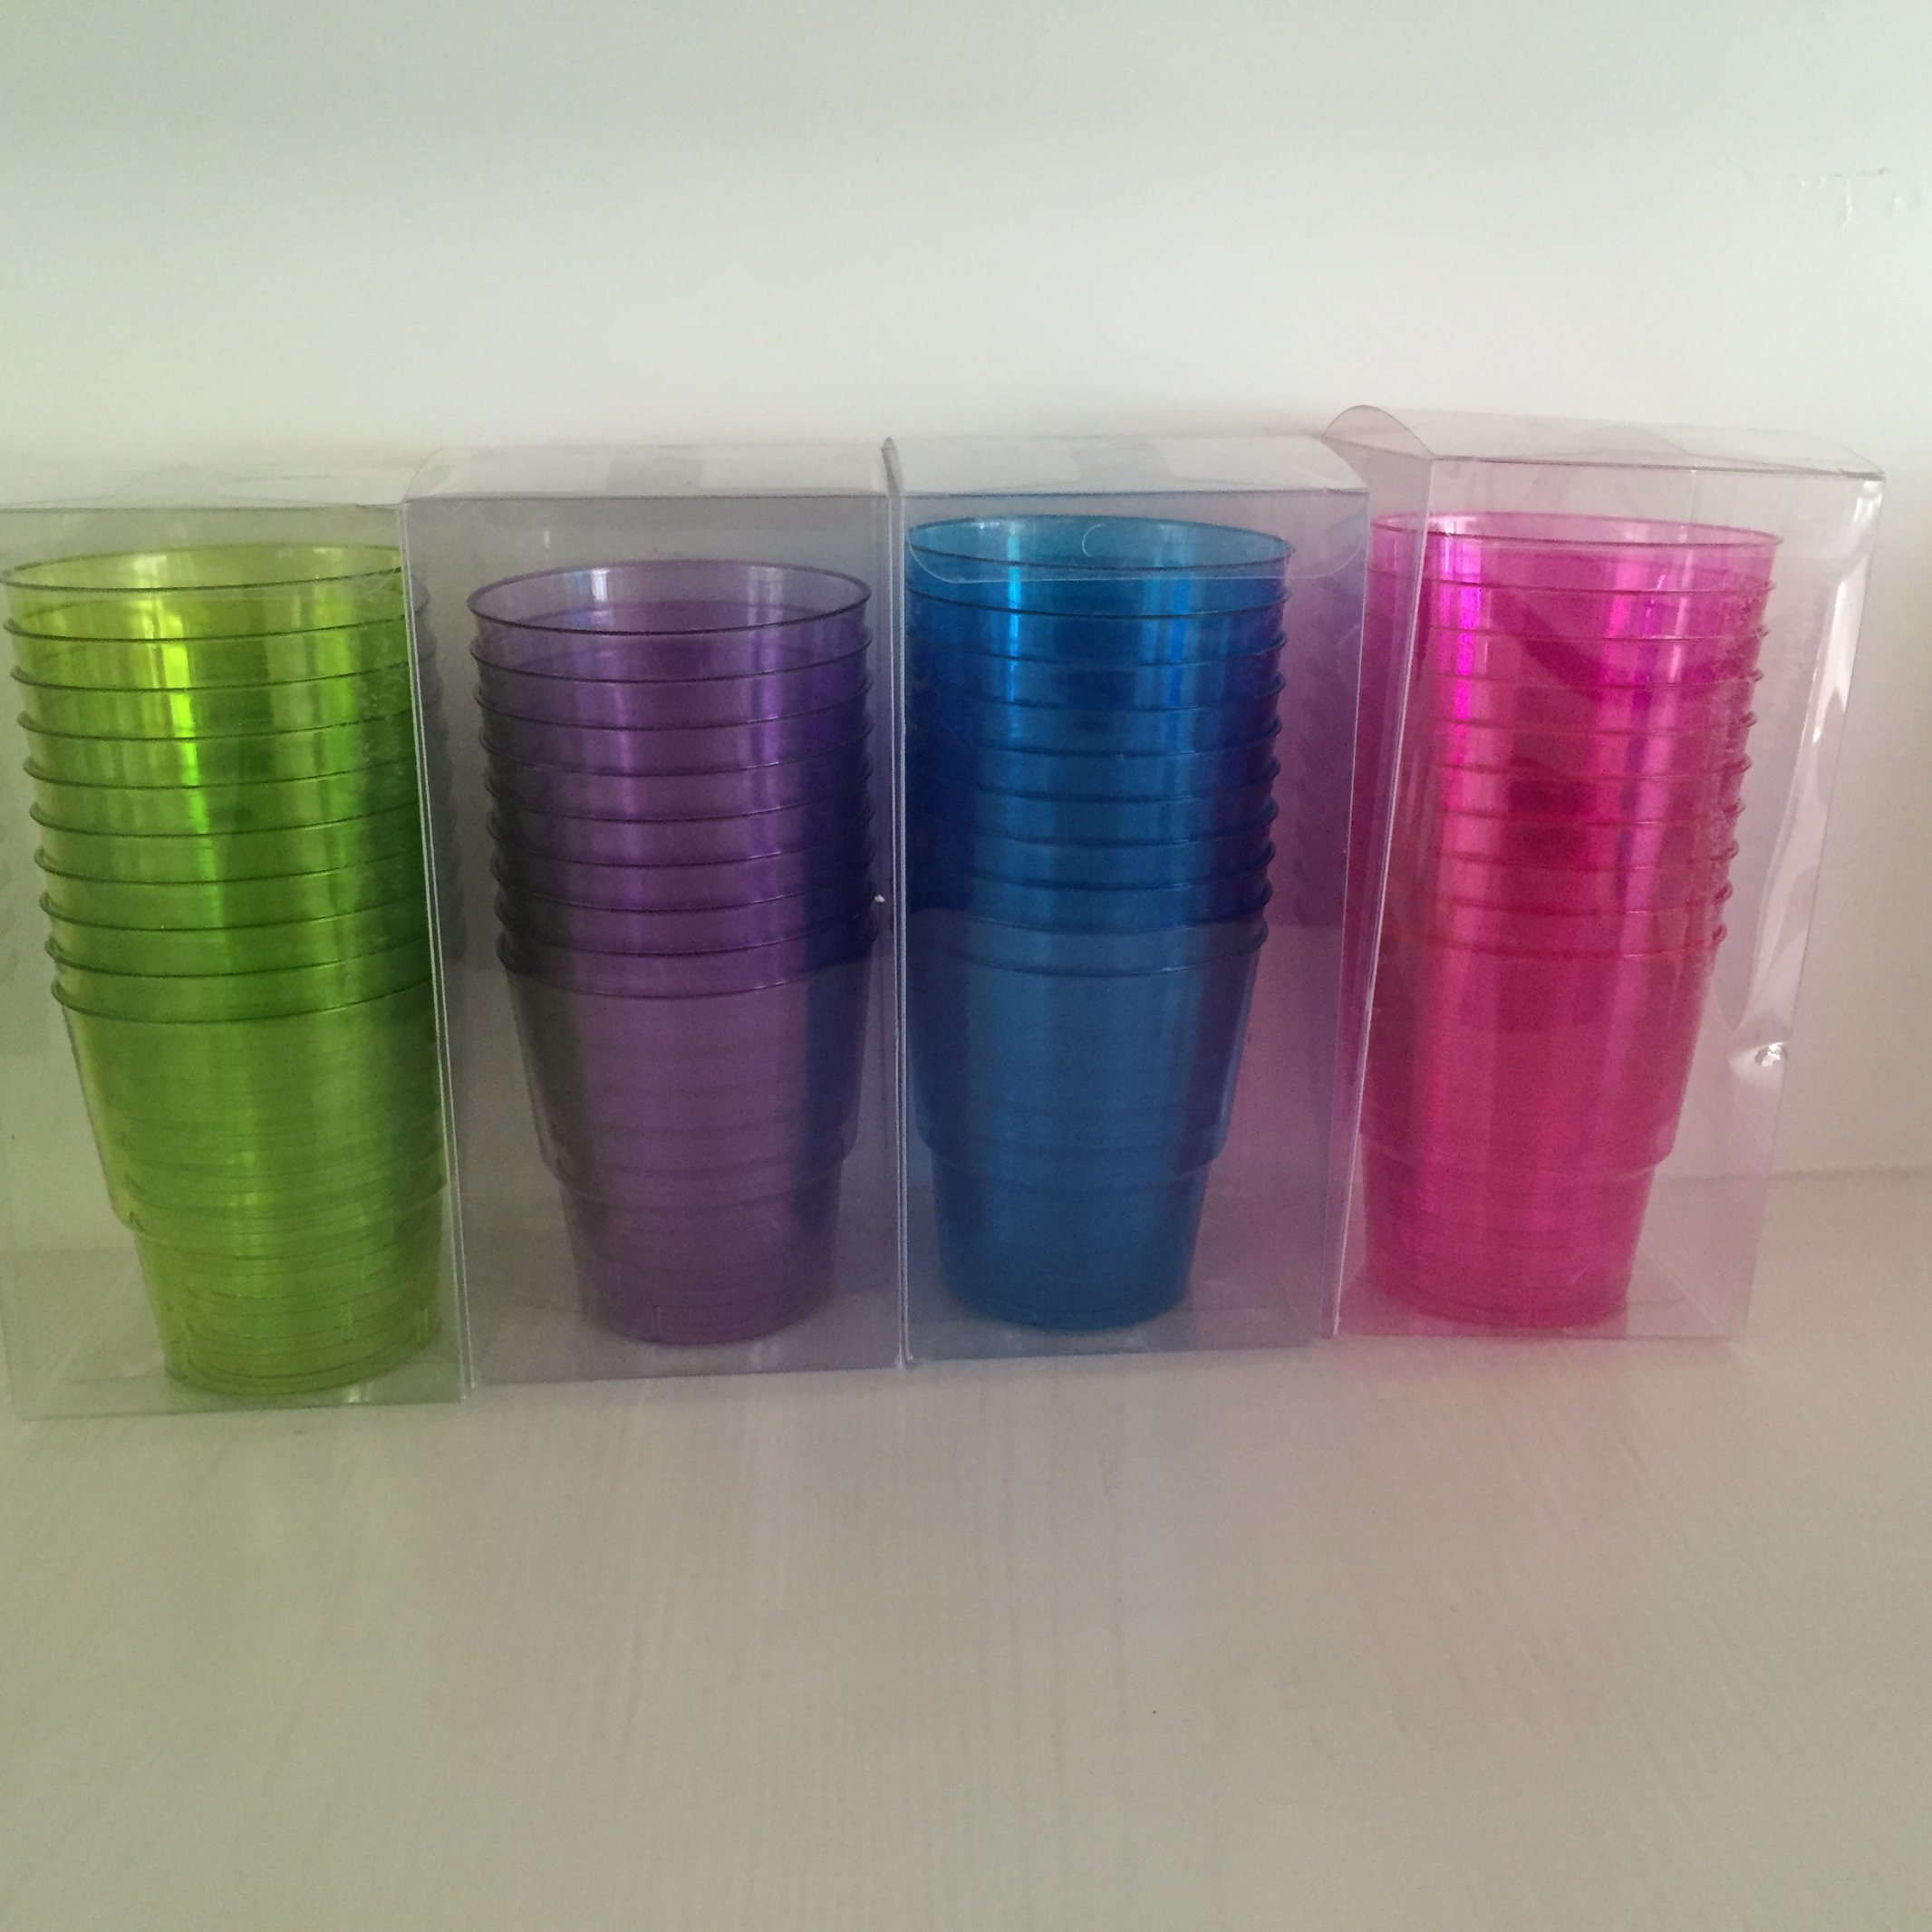 Plastic Cup, Glass, Mug, Tableware, PS, Transparent, Disposable, Clear, Colorful Cup